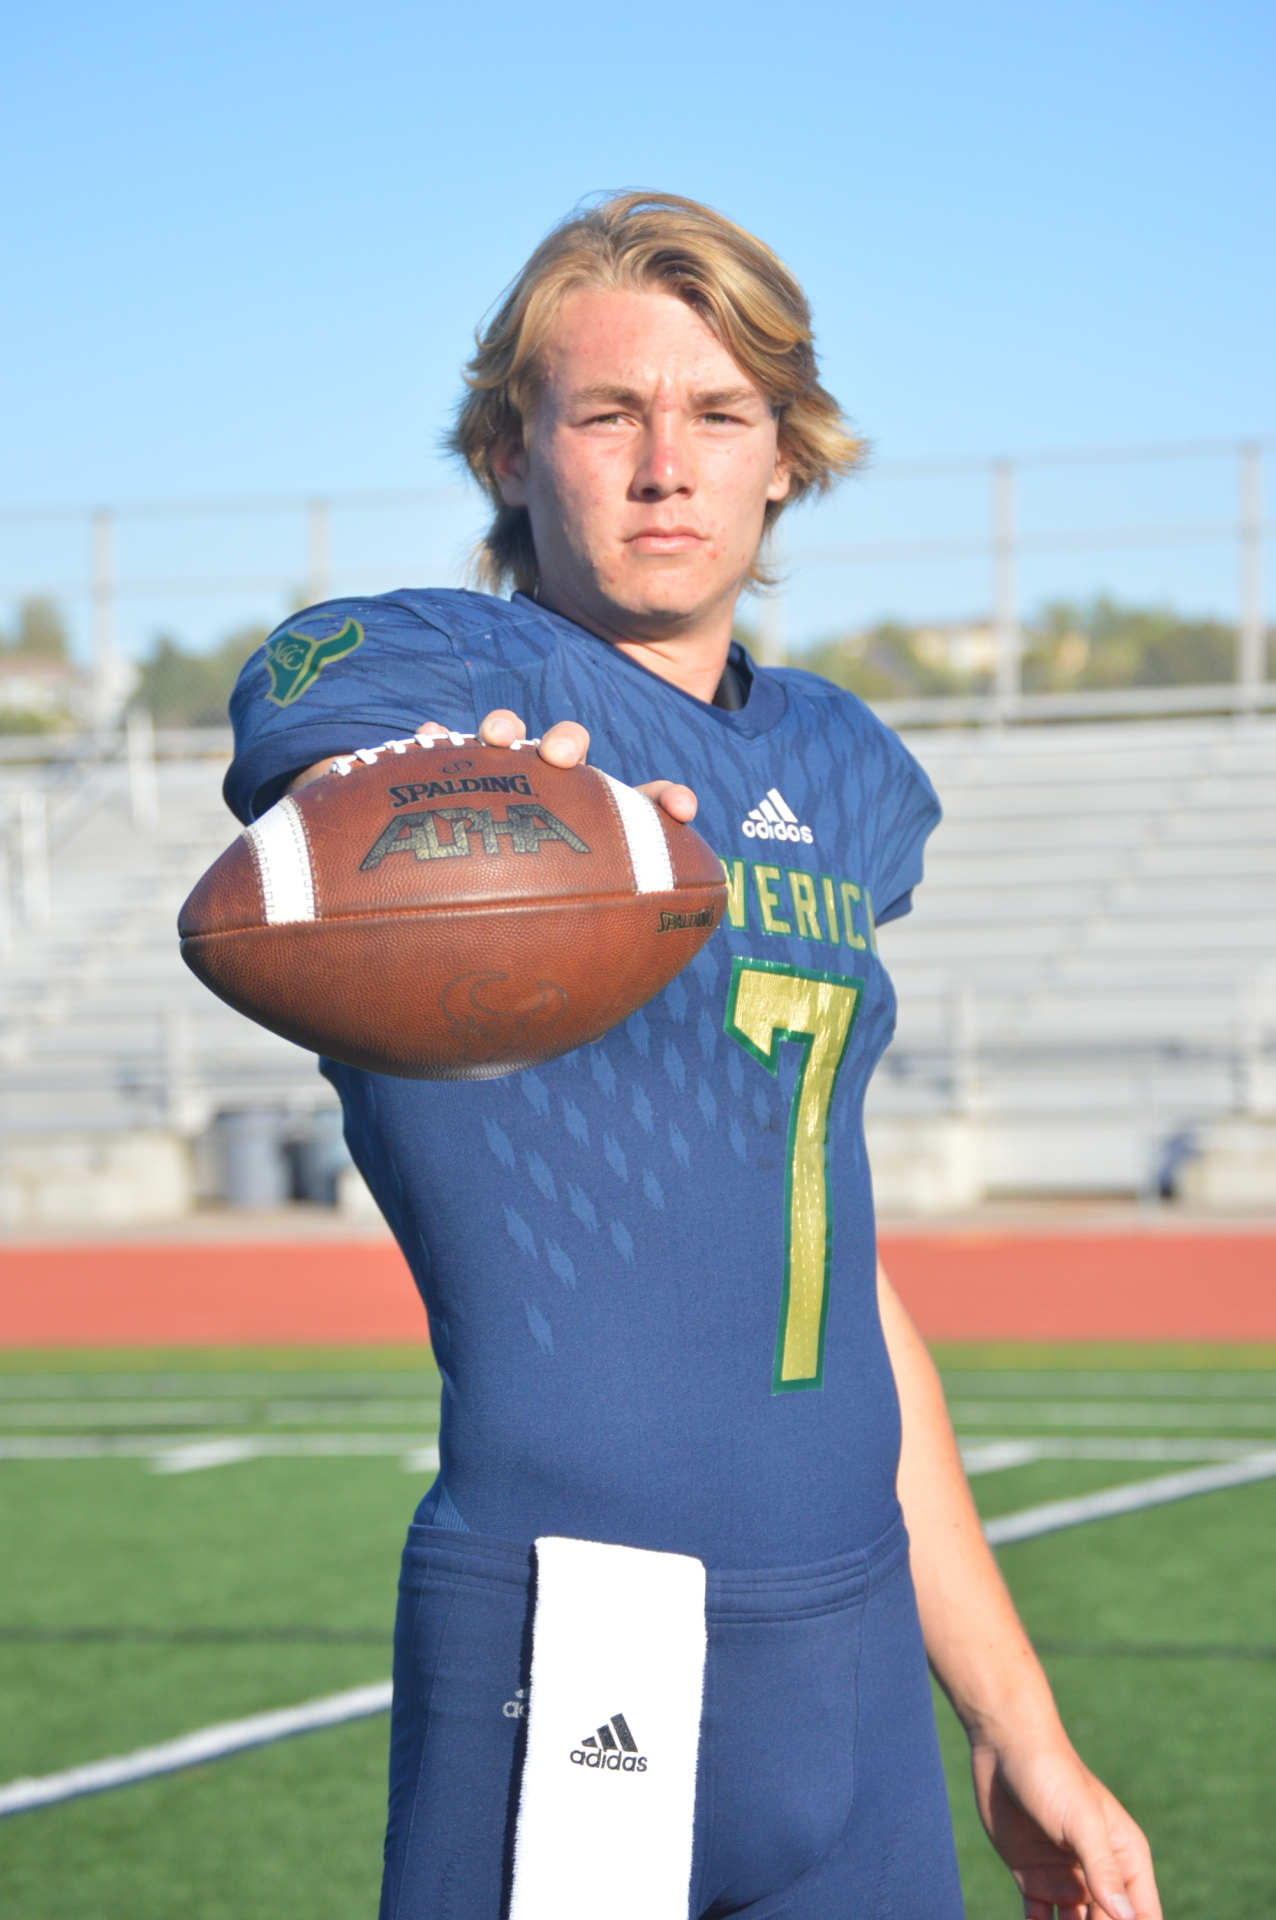 La Costa Canyon High School - QB Marshall Eucker